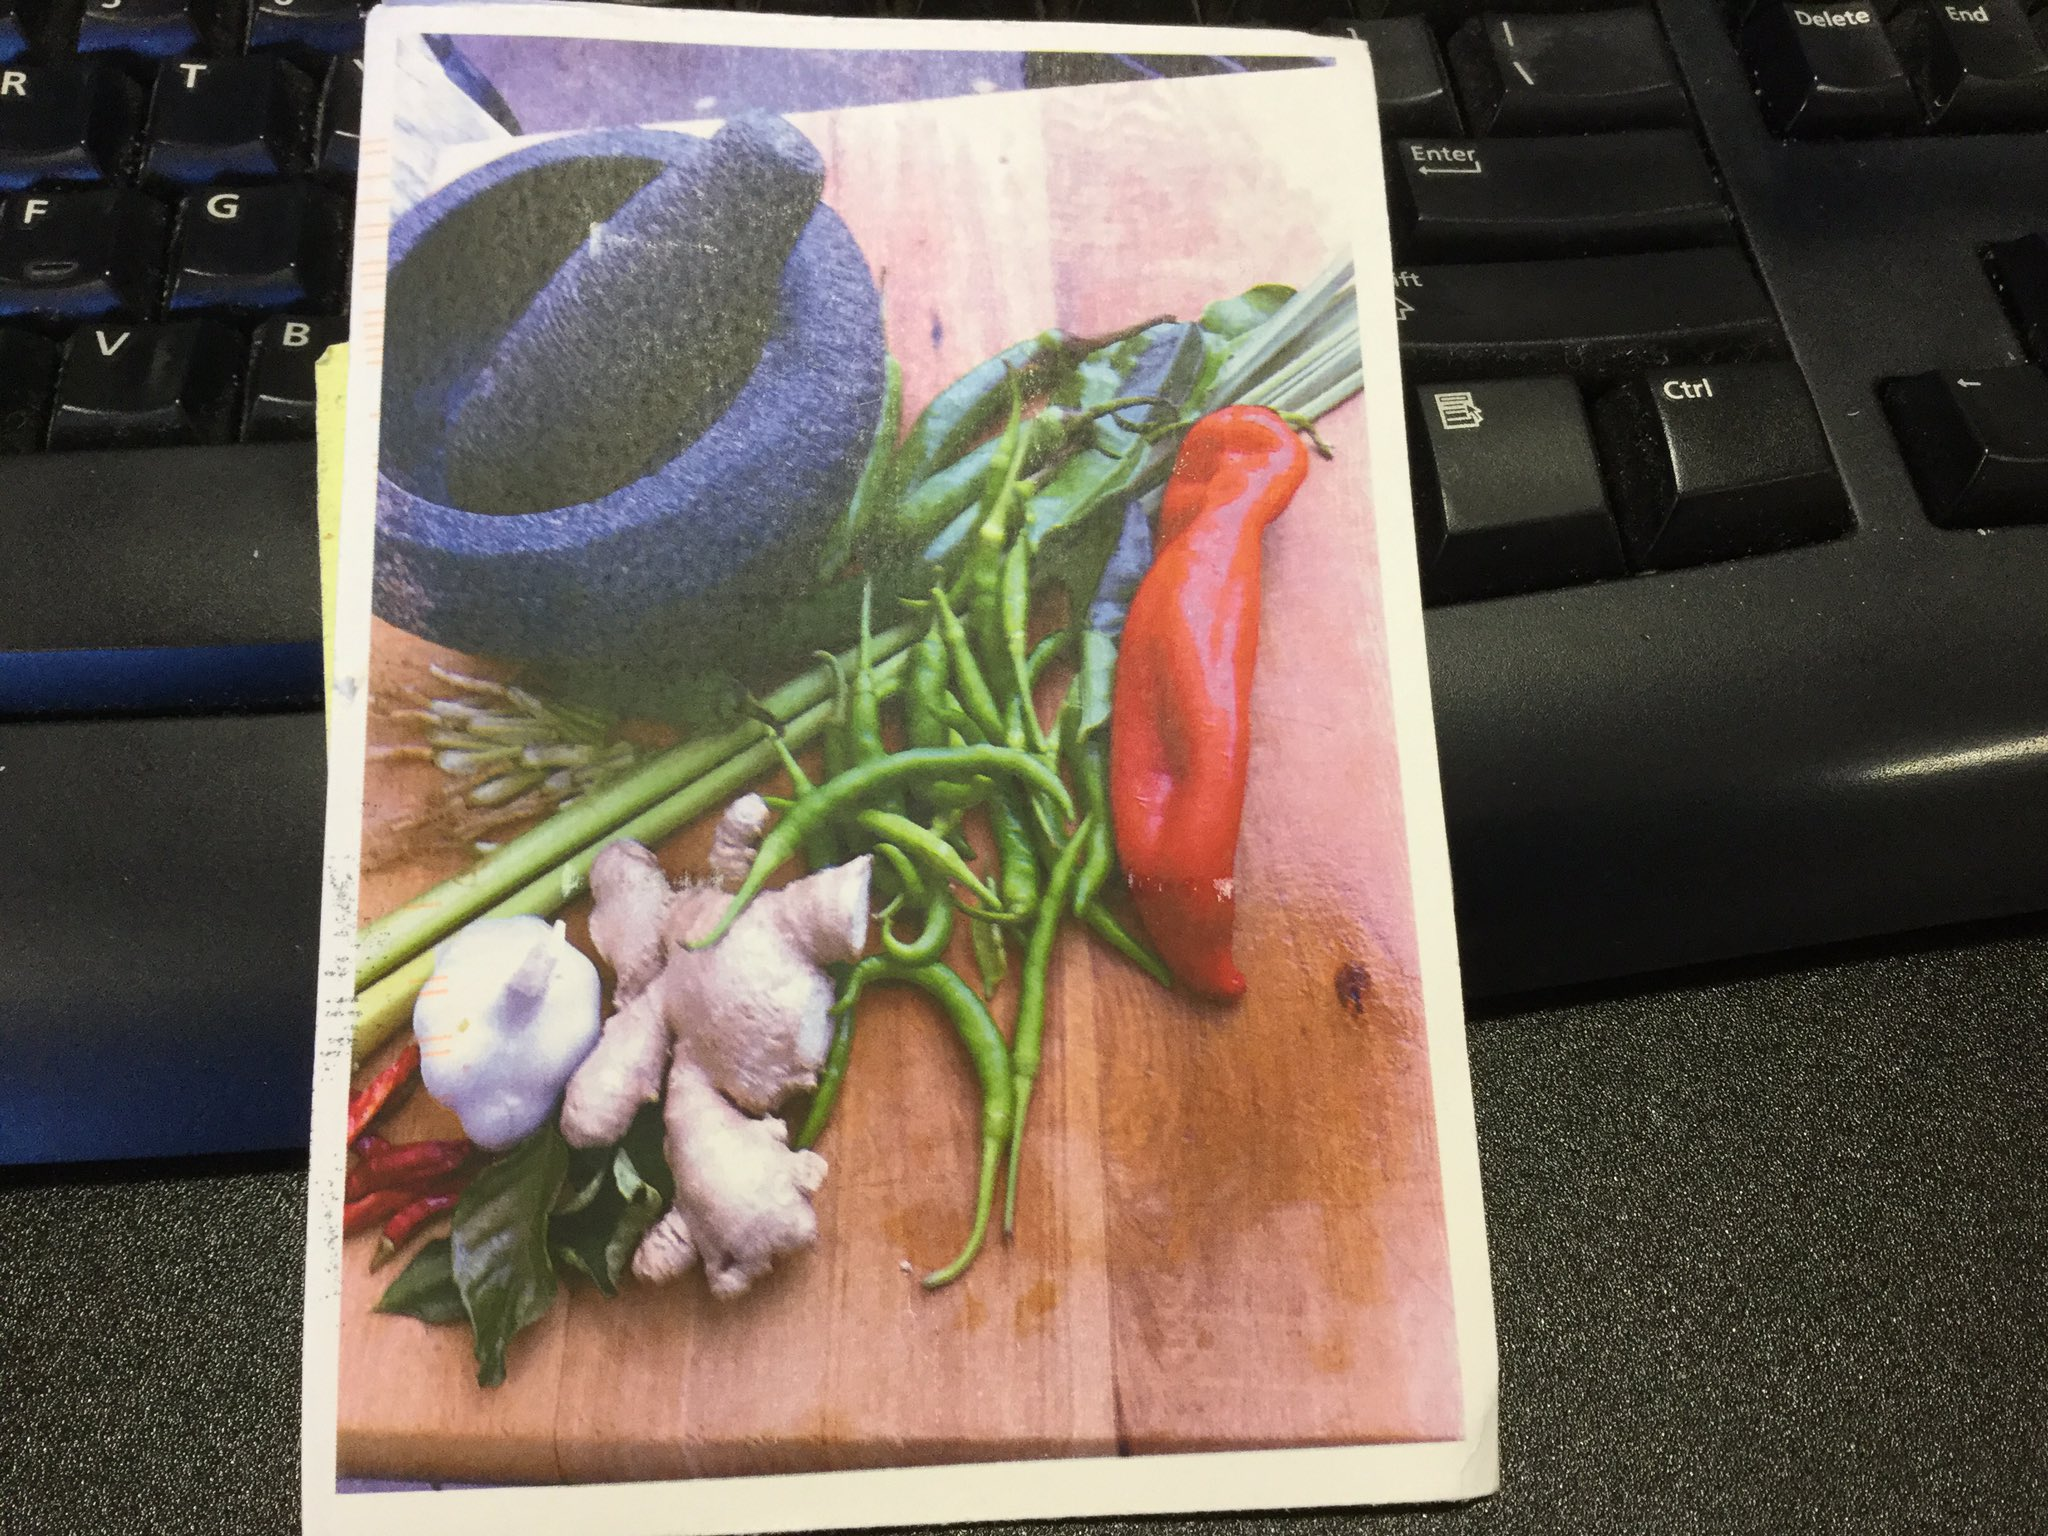 I wonder if the maker of this #clmooc postcard is on twitter? I hope the green curry was yummy! https://t.co/4DERV3n3PK